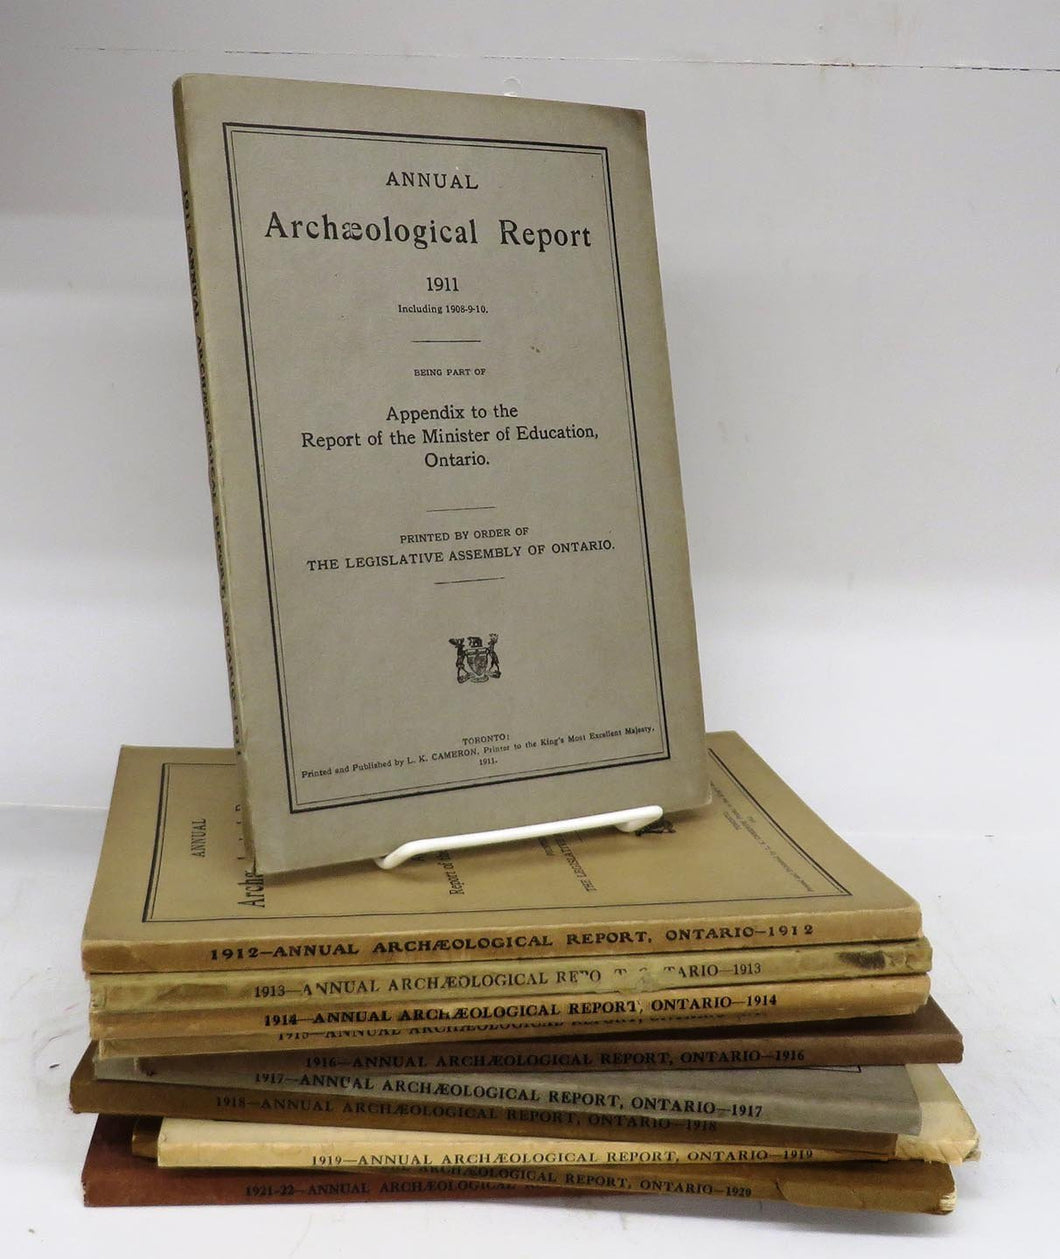 Annual Archaeological Reports 1911-1922